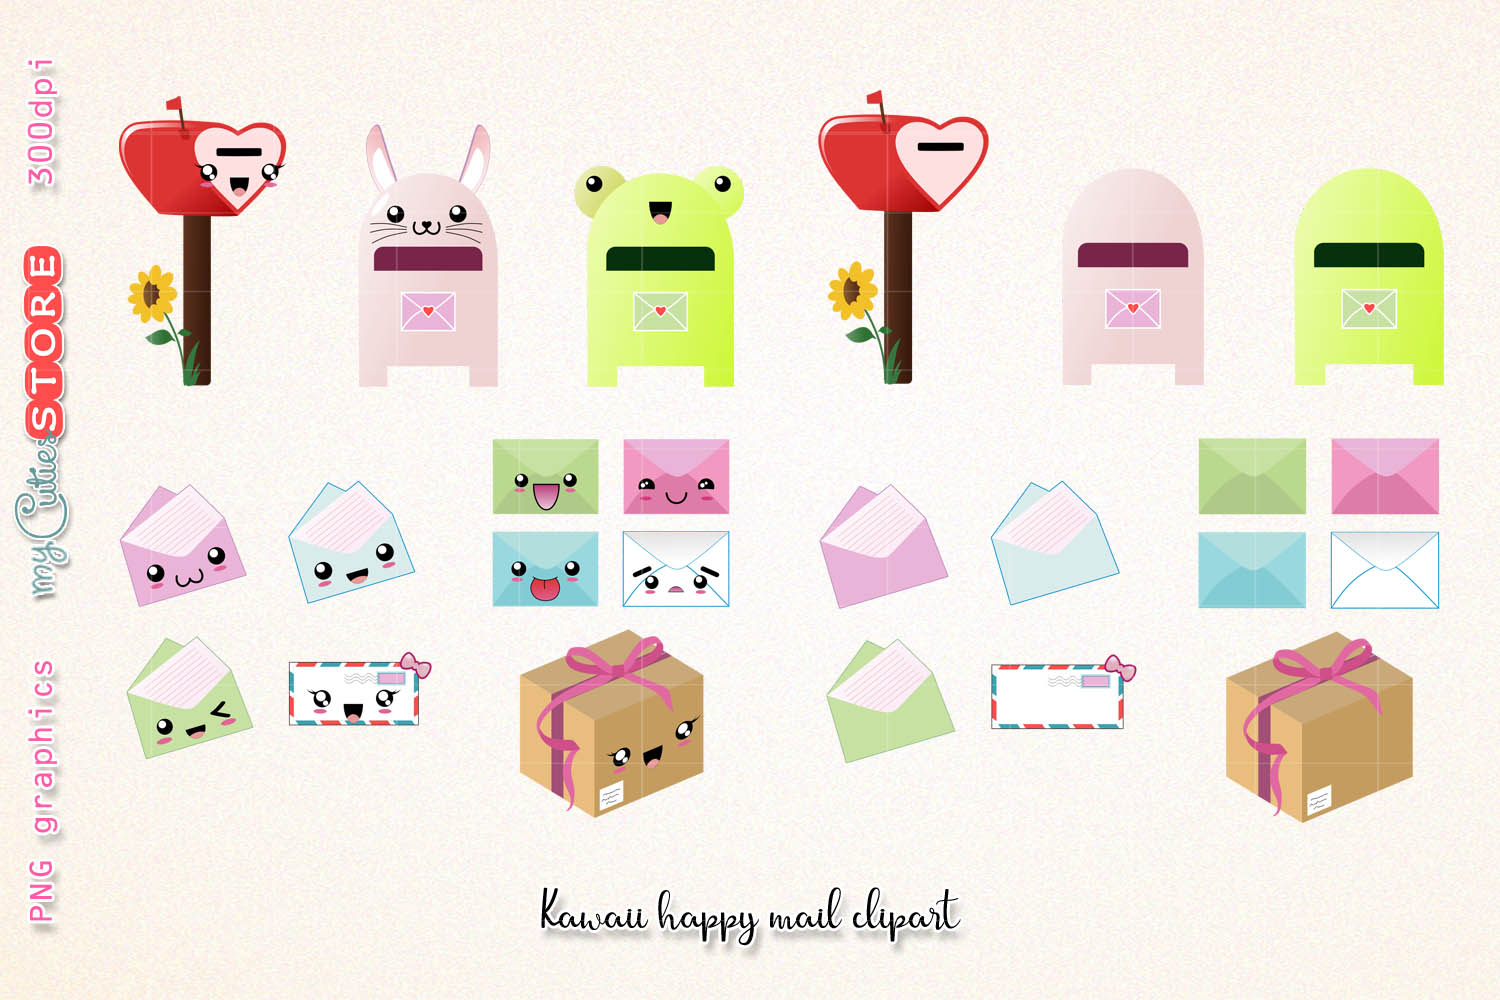 Kawaii happy mail clipart, cute mailbox graphics set great for planner  stickers, scraps or digital planning..